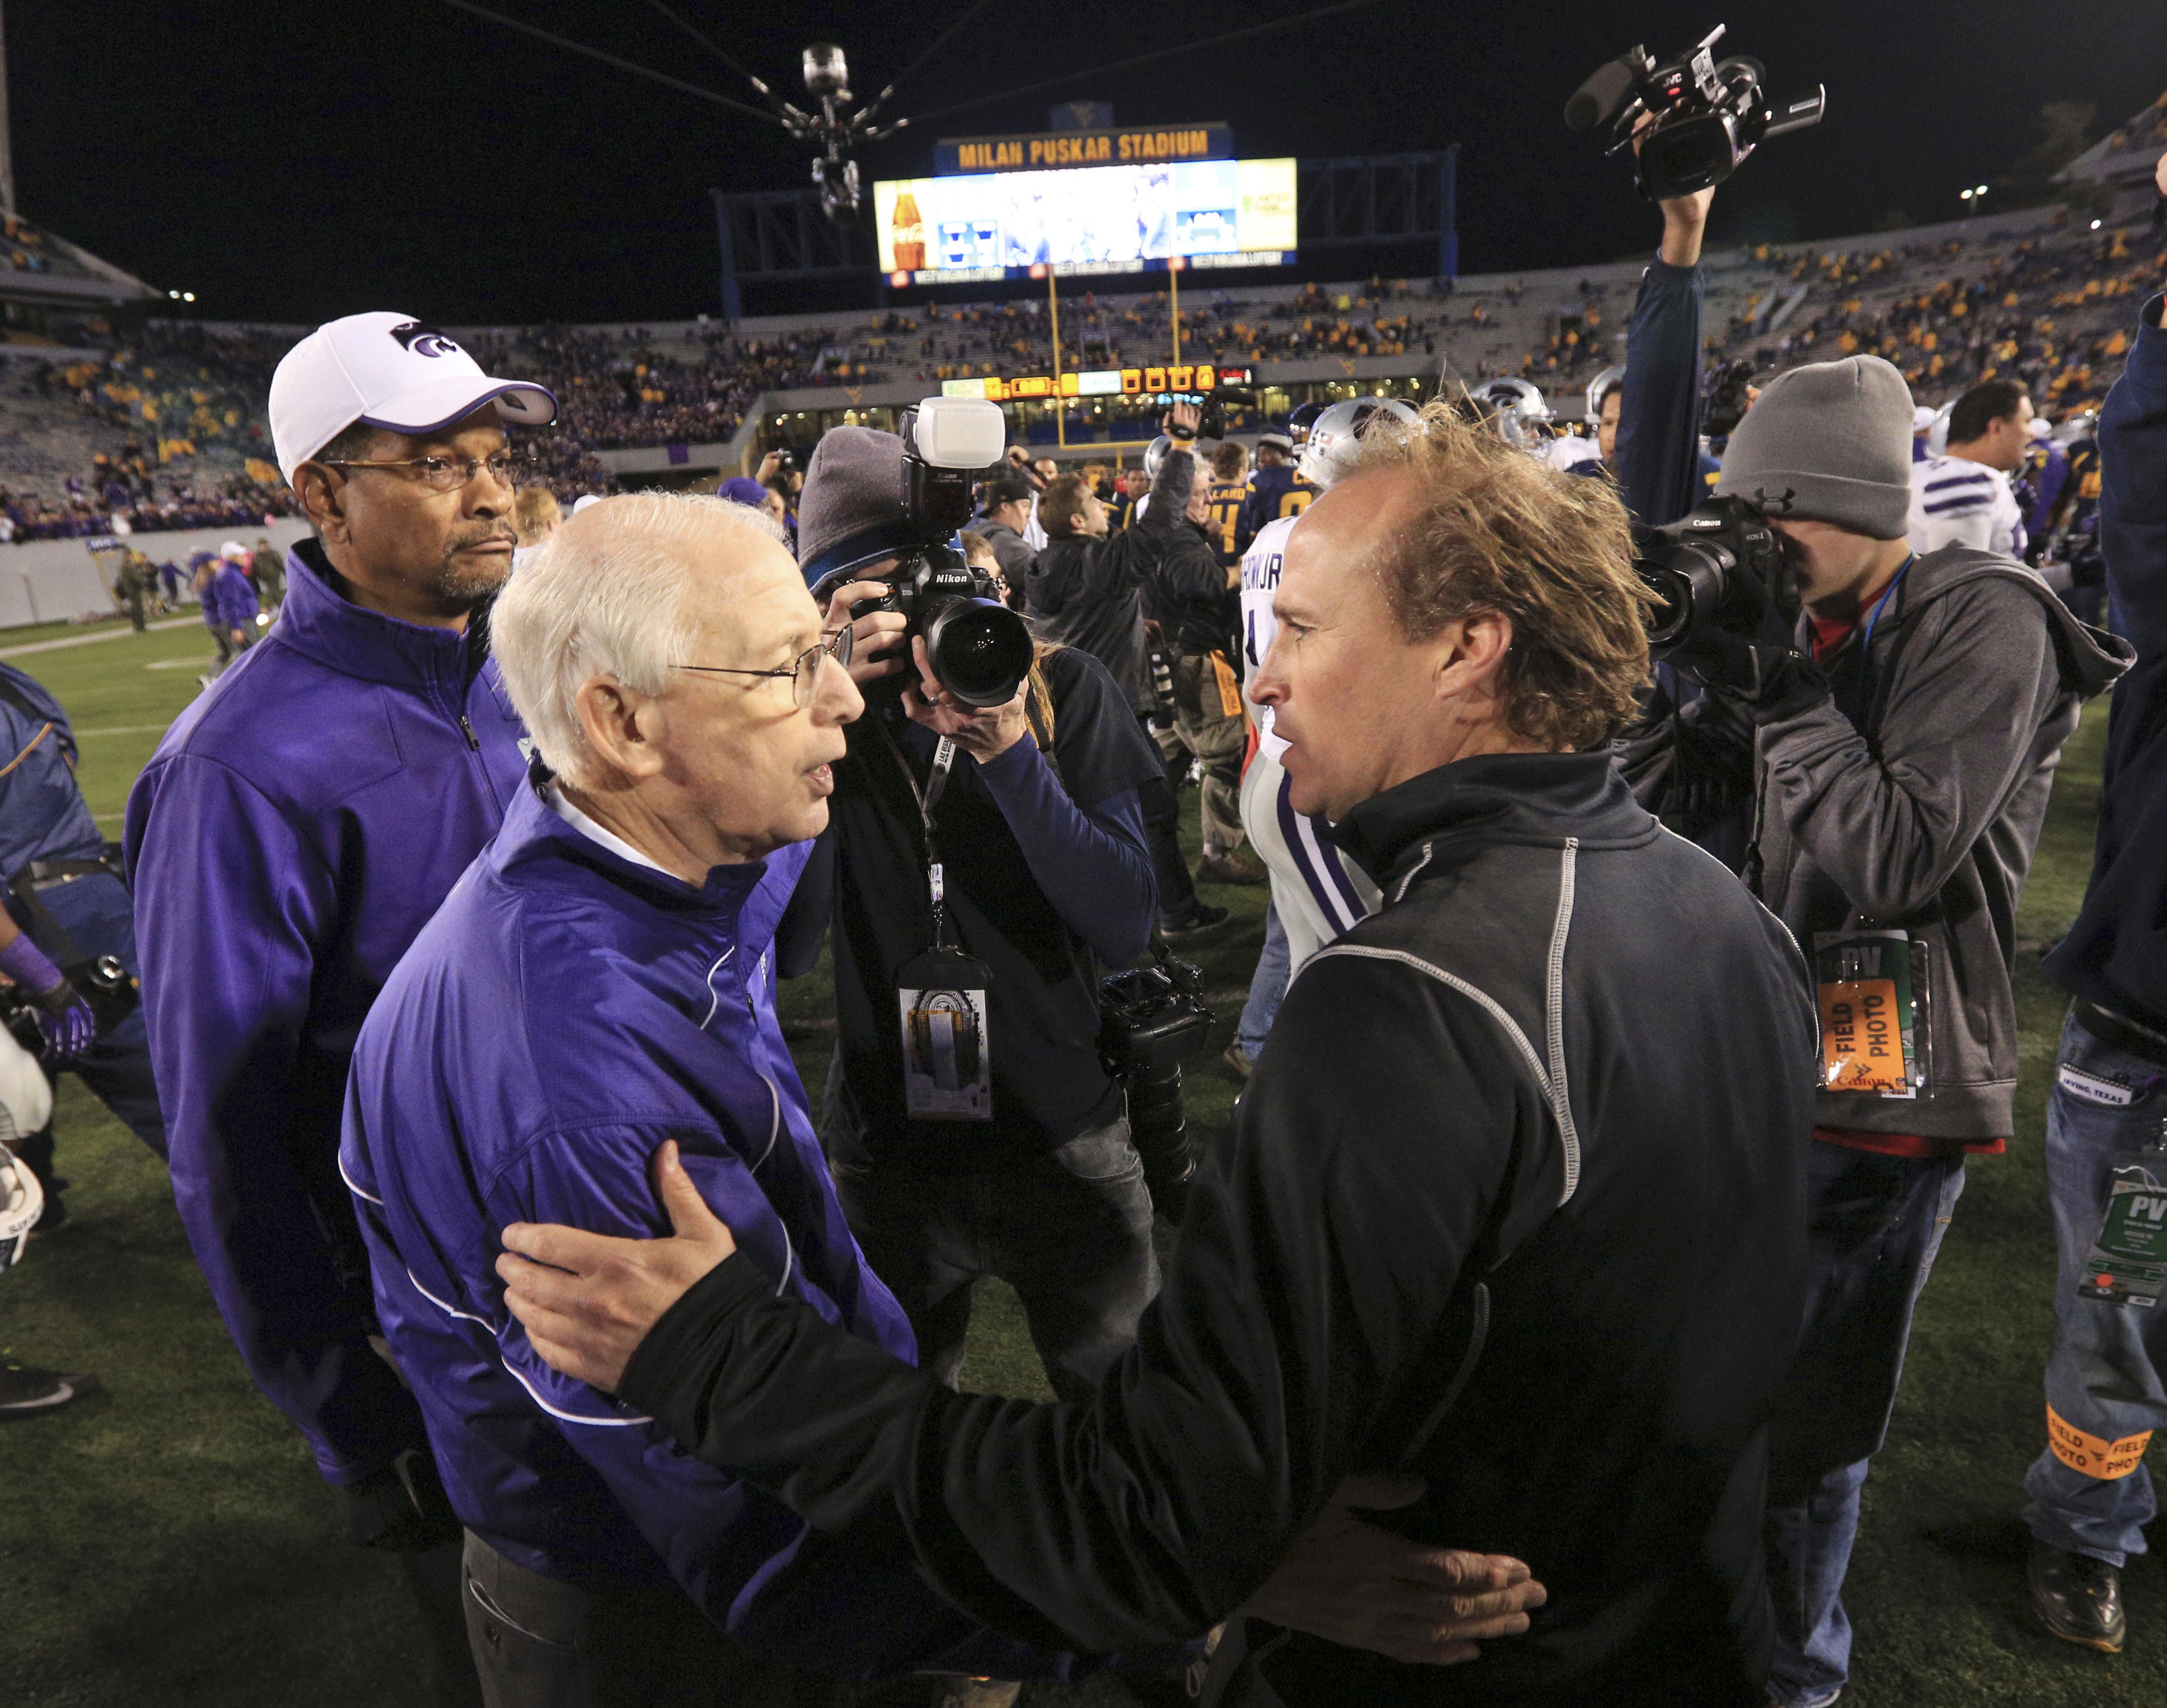 FILE - In this Oct. 20, 2012, file photo, Kansas State coach Bill Snyder, front left, greets West Virginia coach Dana Holgorsen meet following an NCAA college football game in Morgantown, W.Va. The two teams meet on Saturday in Morgantown (AP Photo/Christ